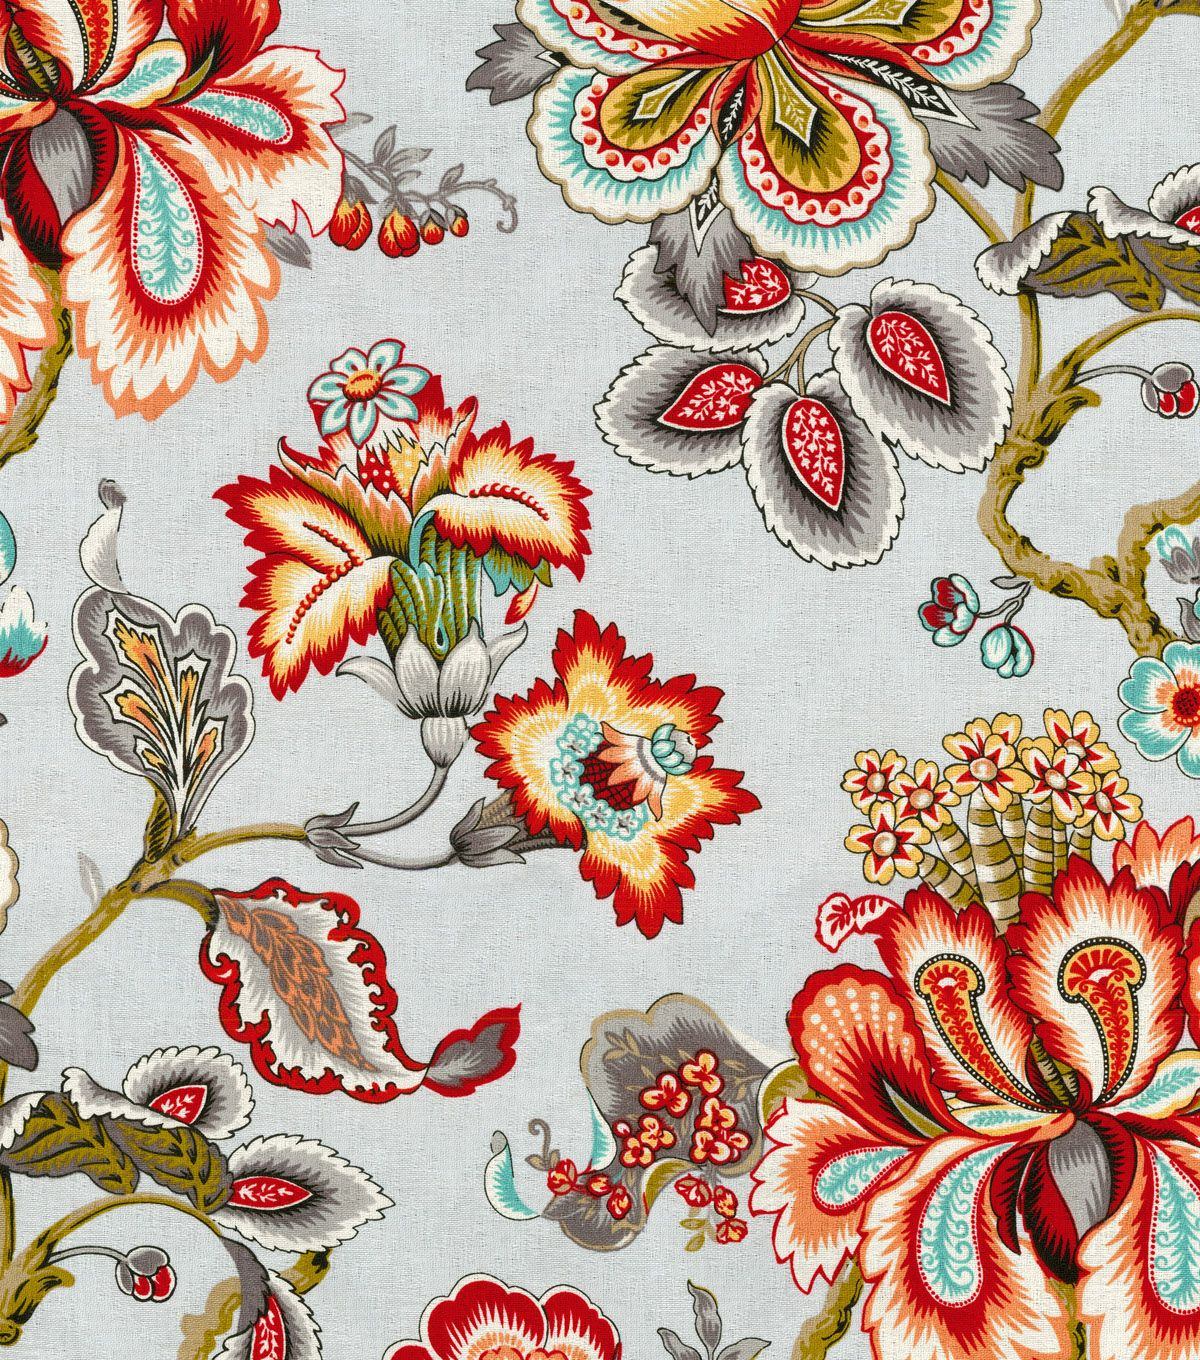 """Hgtv Home Upholstery Fabric 54"""" – Bespoke Blossoms Mineral With Regard To Most Current Blended Fabric Hidden Garden Chinoiserie Wall Hangings With Rod (View 18 of 20)"""